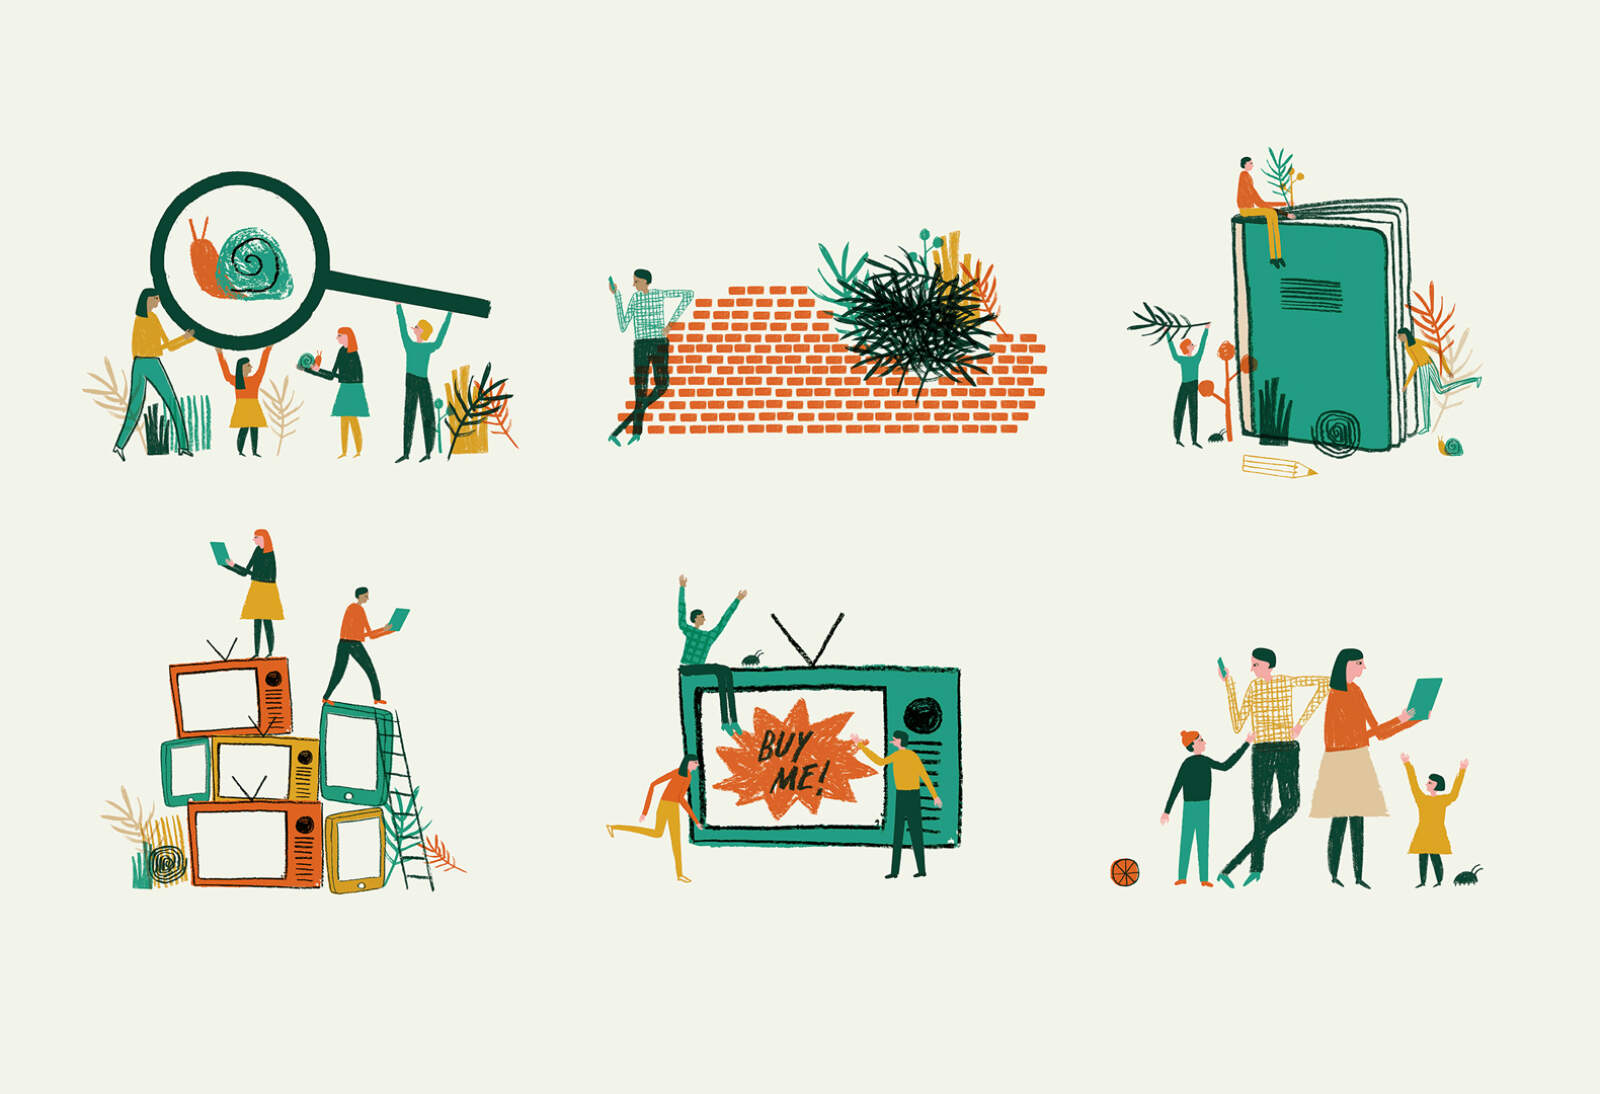 Collection of small illustrations for The Wild Network branding.